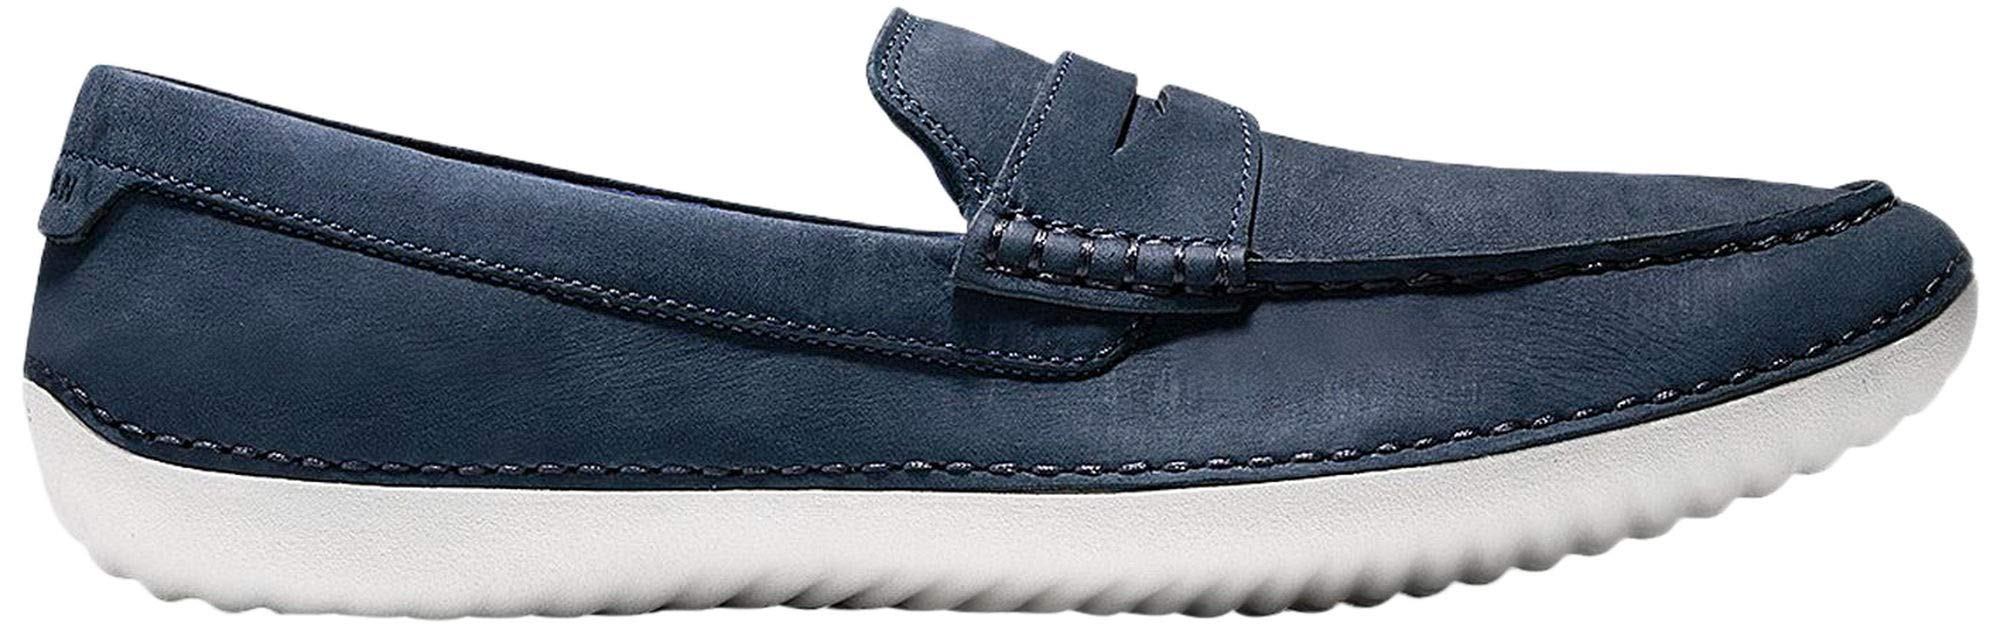 e05bb337c84 Galleon - Cole Haan Mens MotOGrand Penny Driving Shoe 10 Navy Ink Nubuck